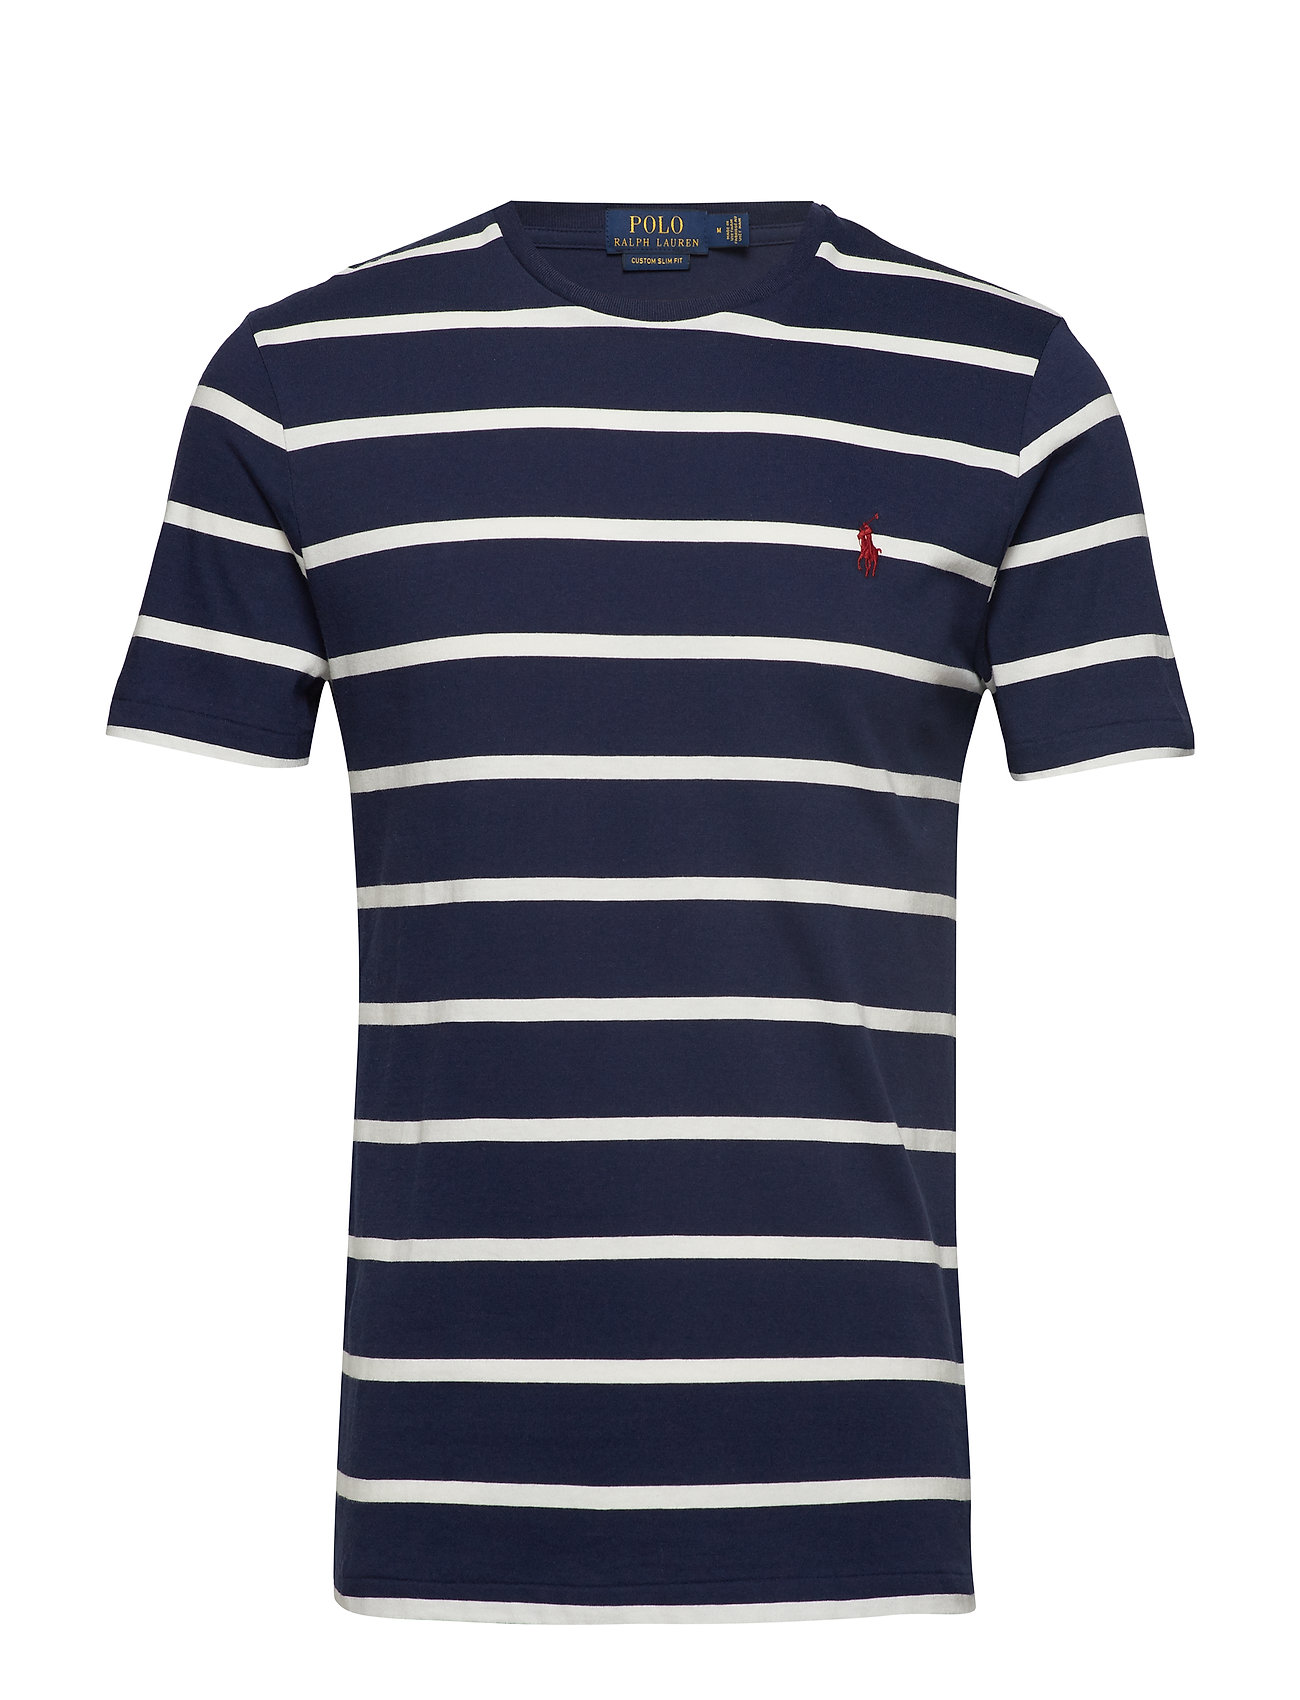 Polo Ralph Lauren Custom Slim Fit T-Shirt - NEWPORT NAVY/NEVI